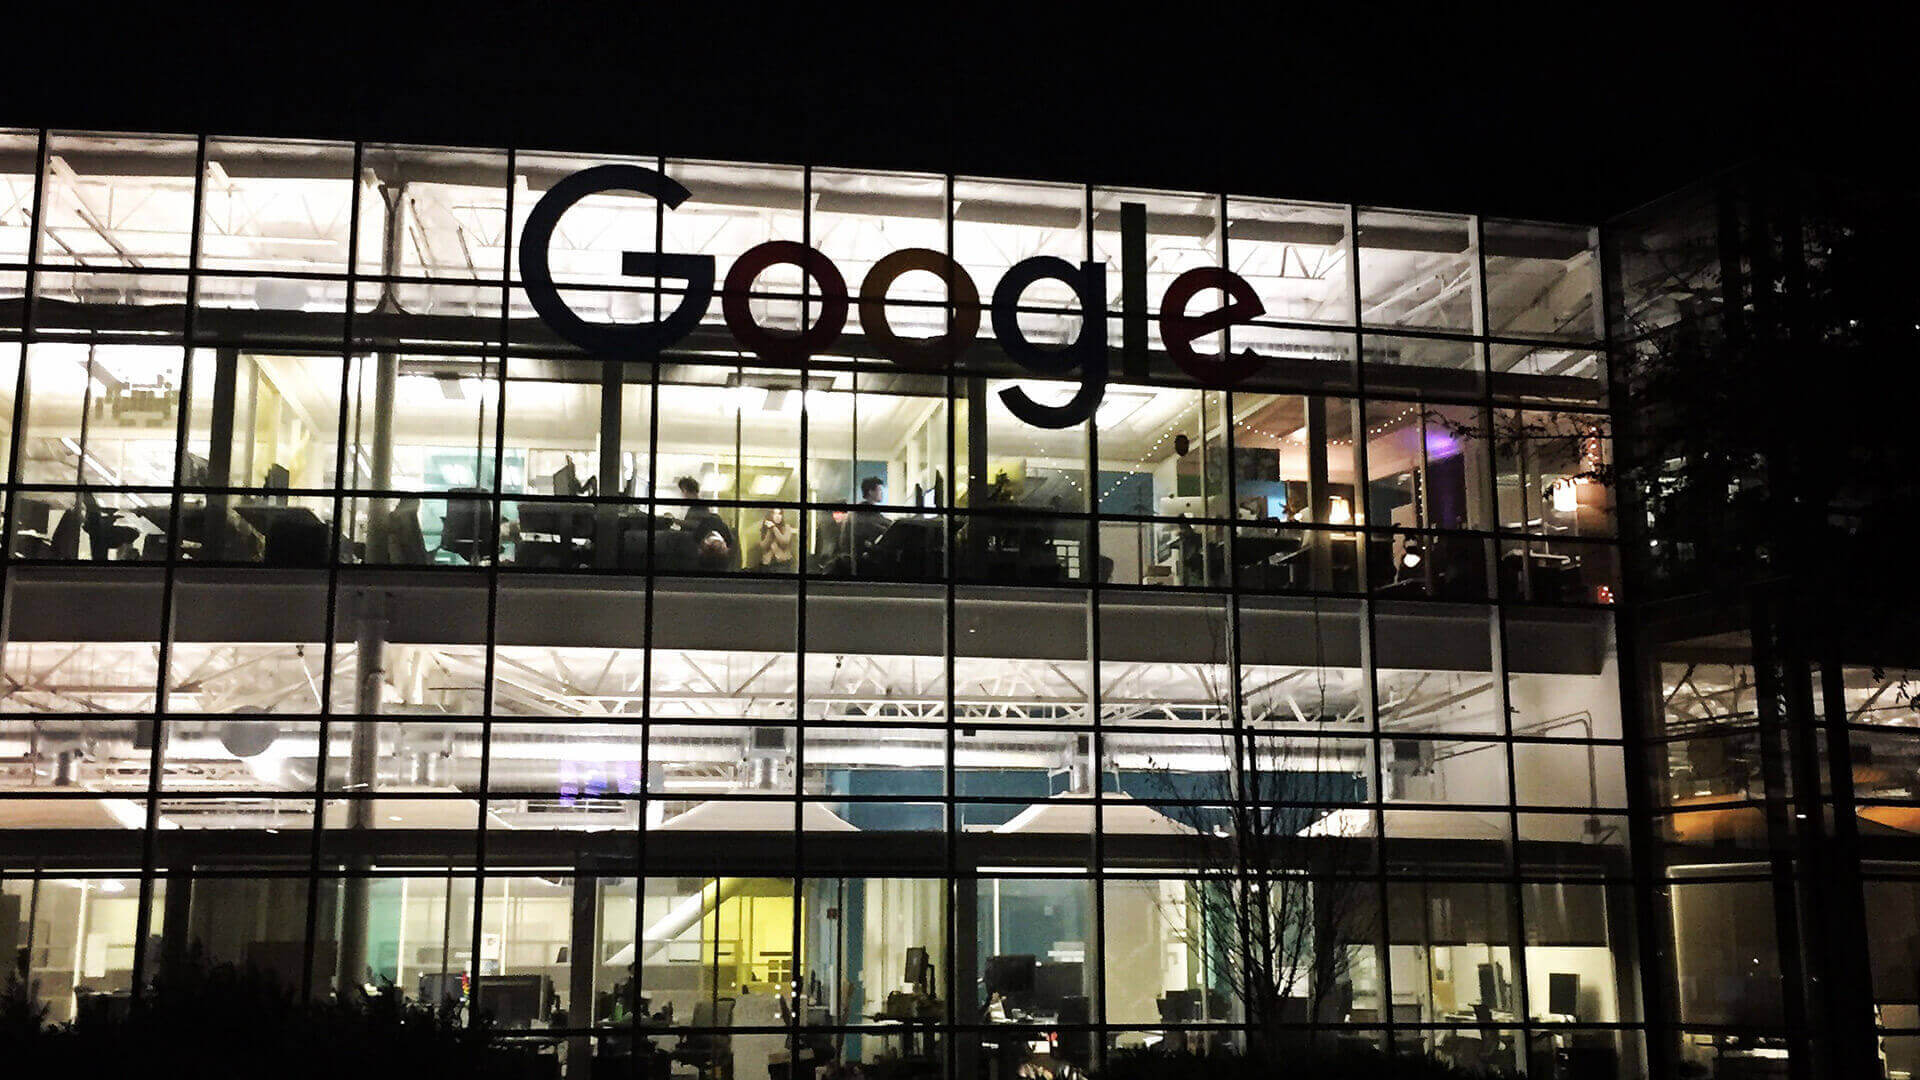 google-building-headquarters-hq-night-1920.jpg